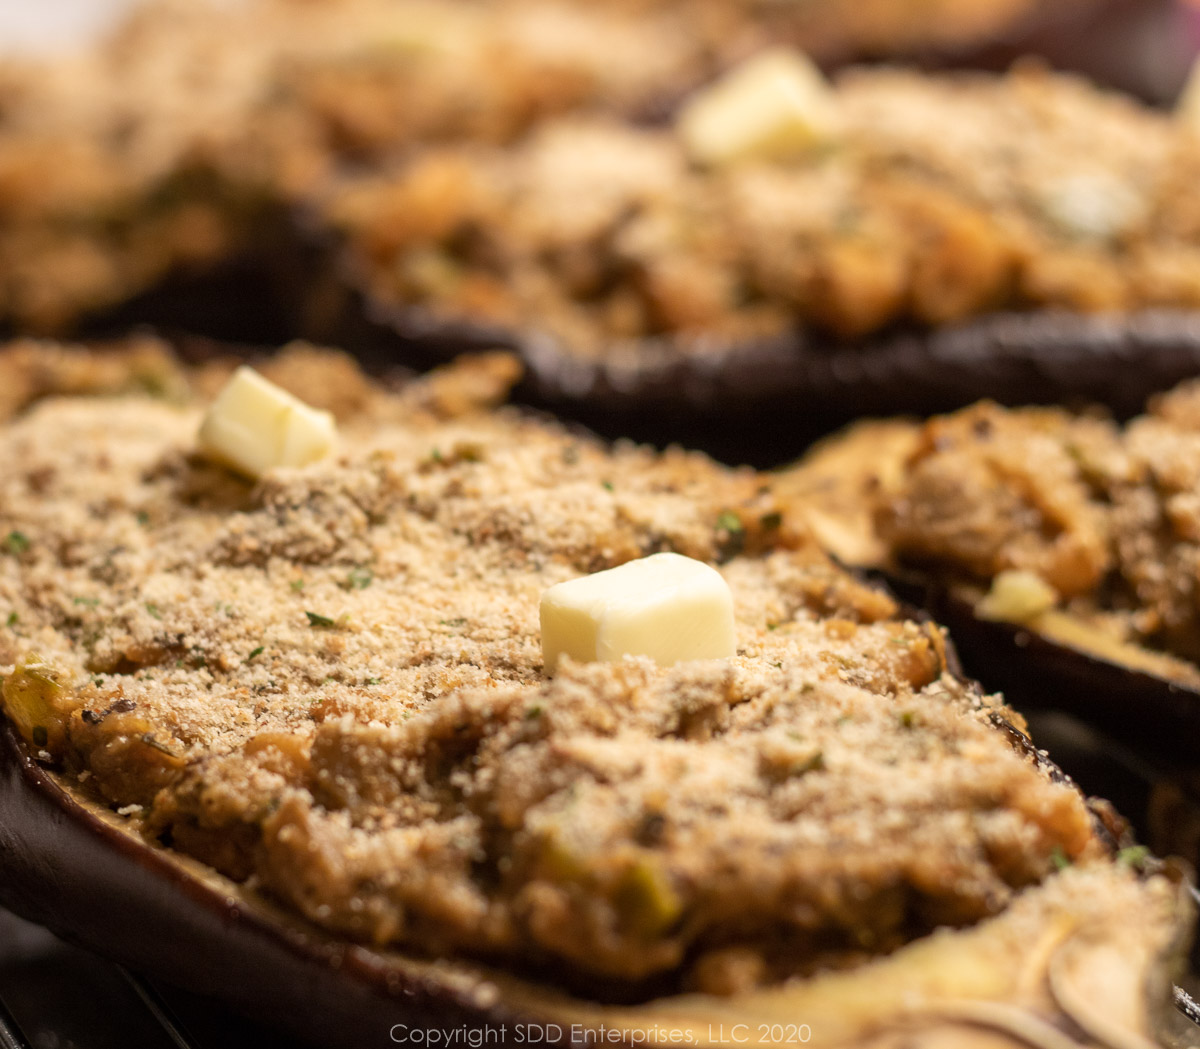 stuffed eggplant with breadcrumb topping and butter ready for the oven